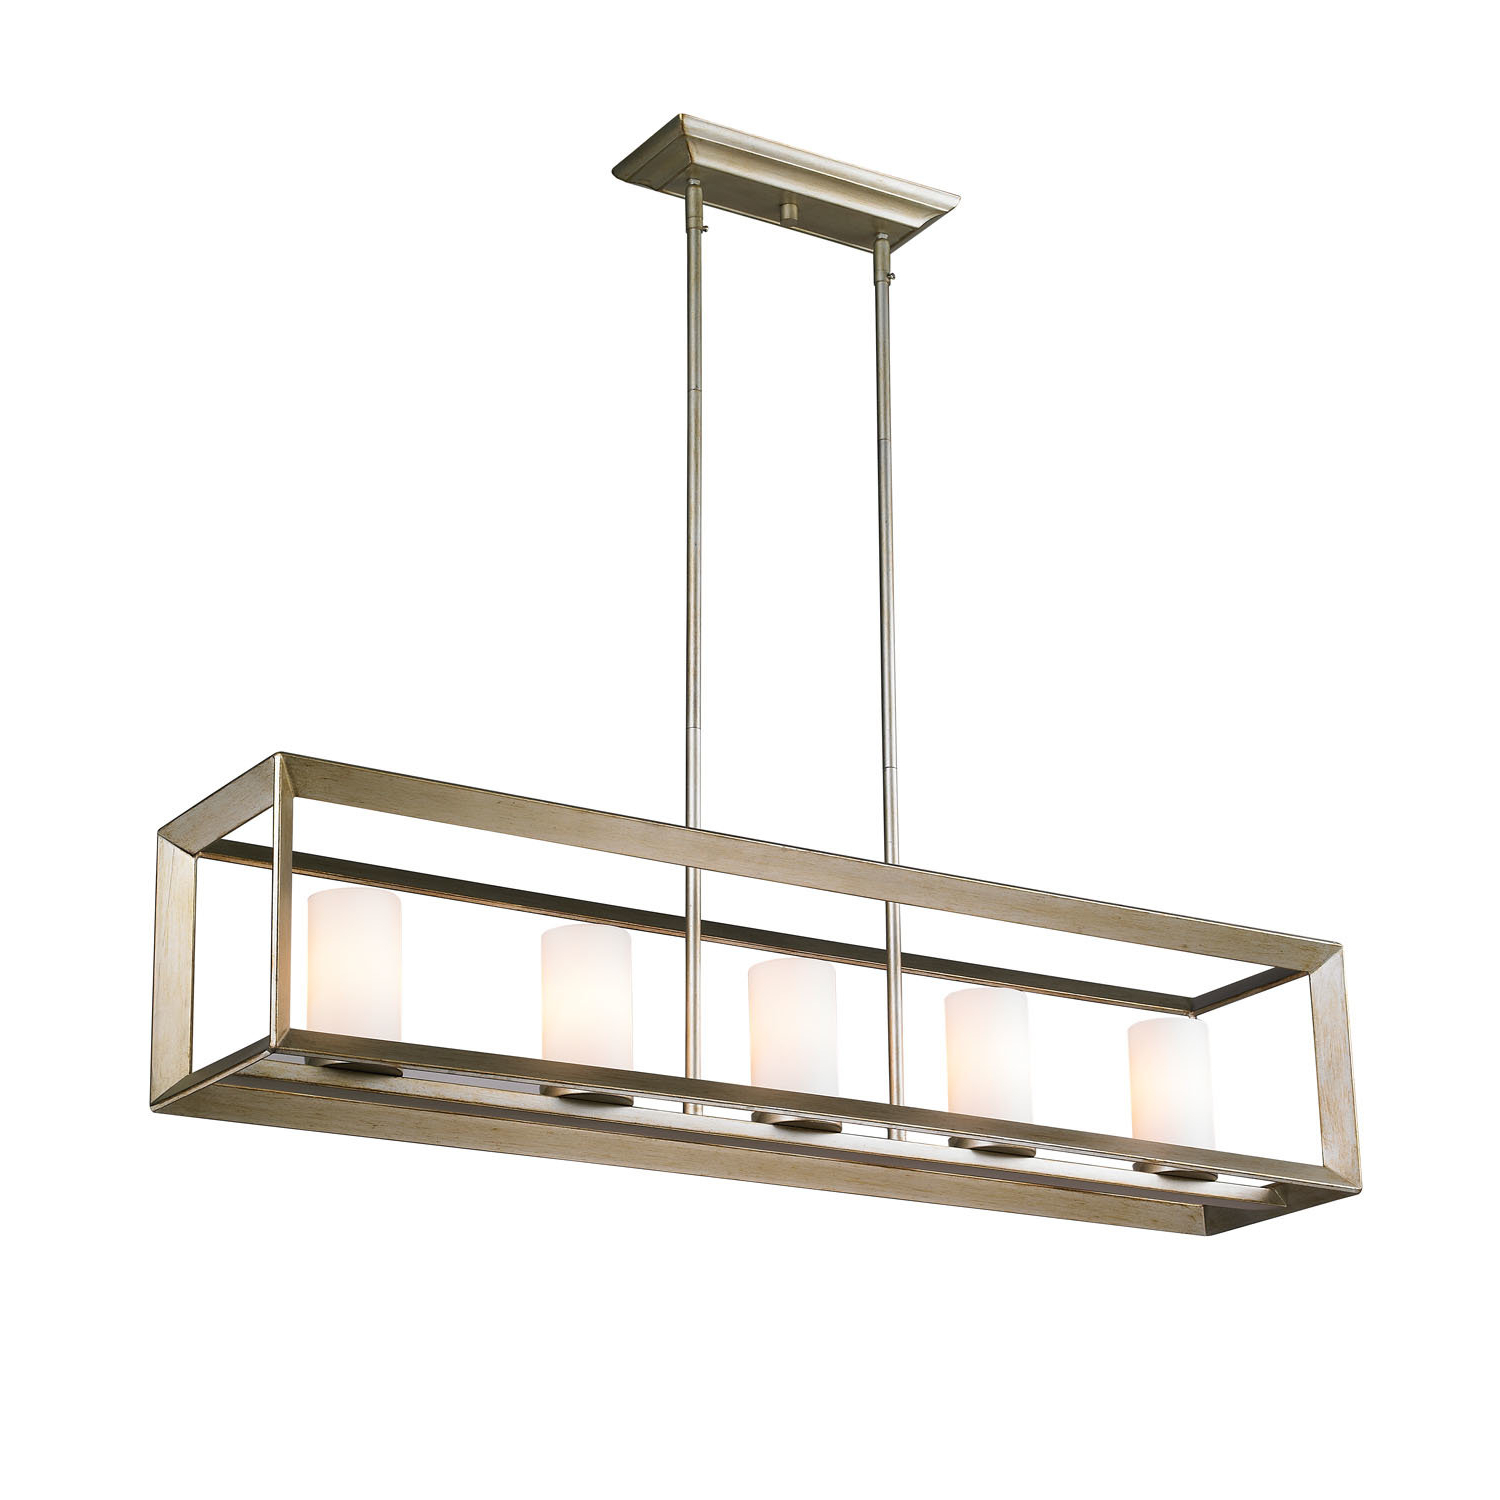 Thorne 5 Light Kitchen Island Pendant For Most Current Bouvet 5 Light Kitchen Island Linear Pendants (View 15 of 20)